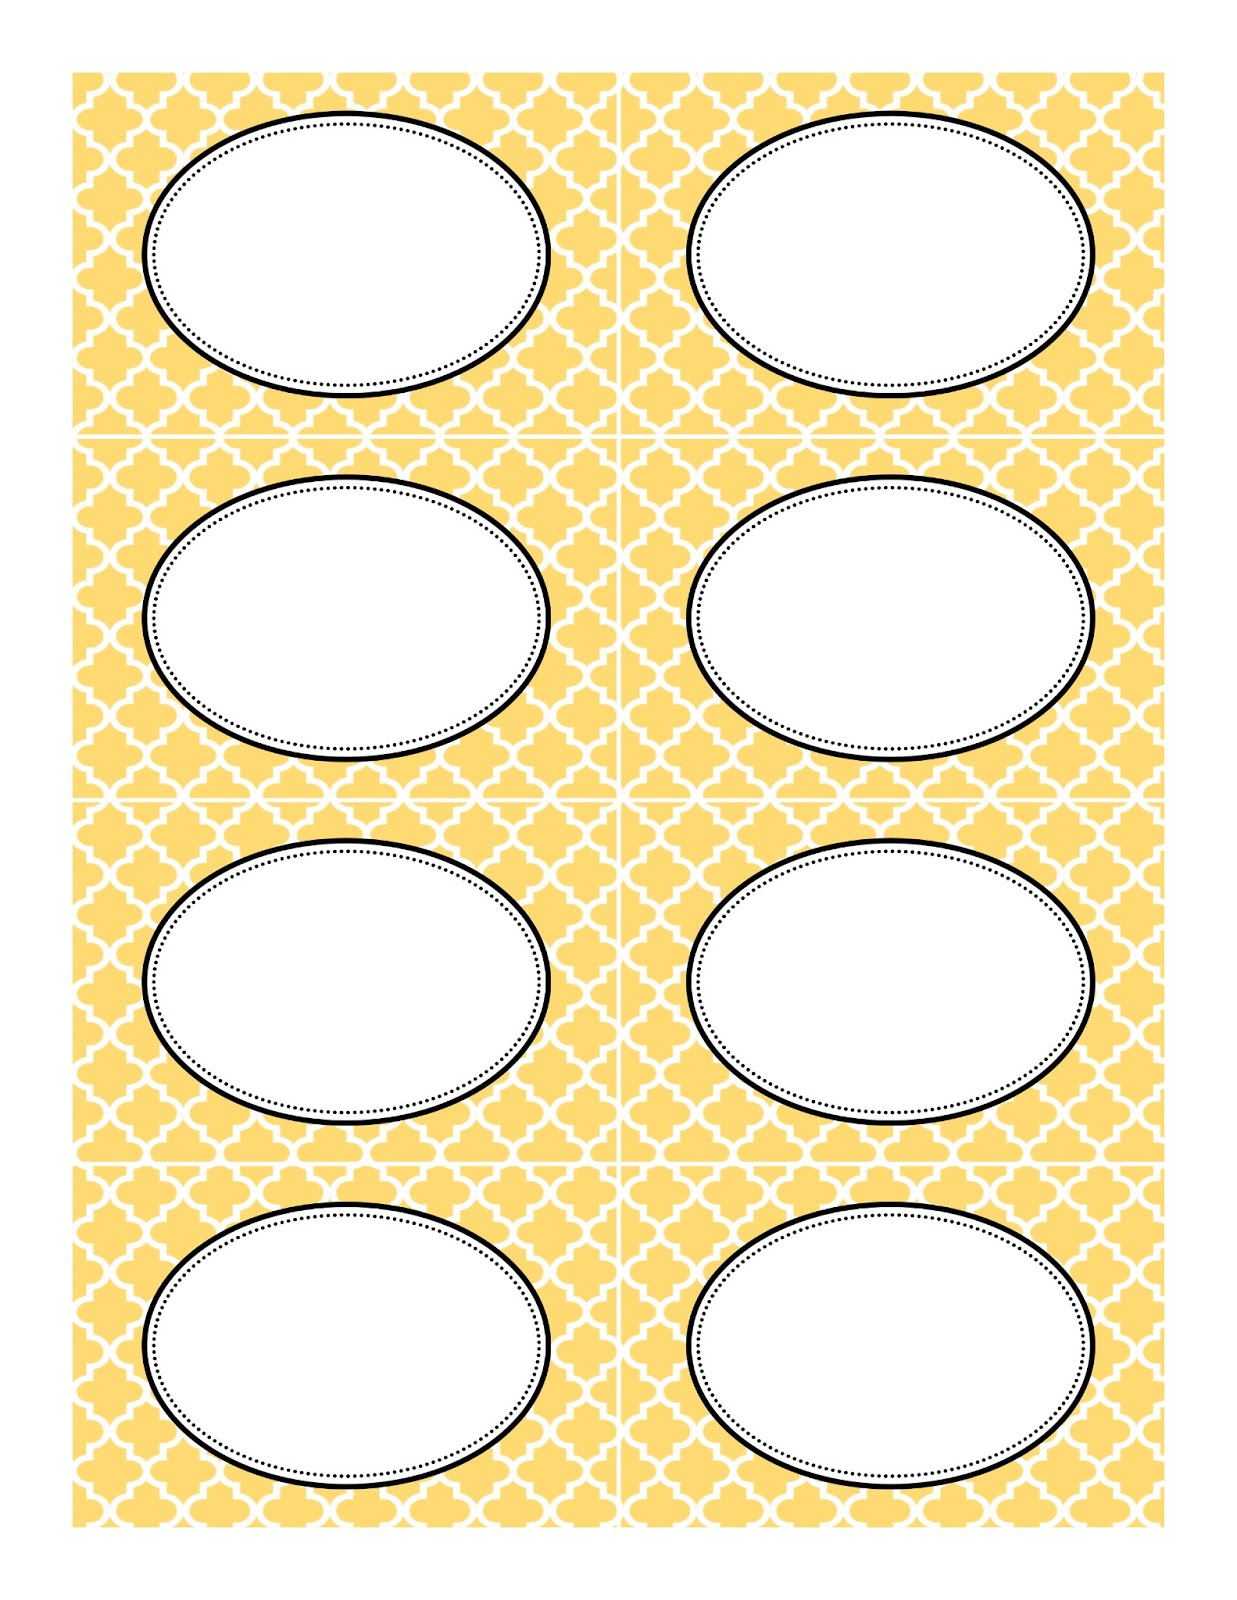 Label Templates Free Awesome The Decor Scene Free Printable Labels From Bhg  Organisation .